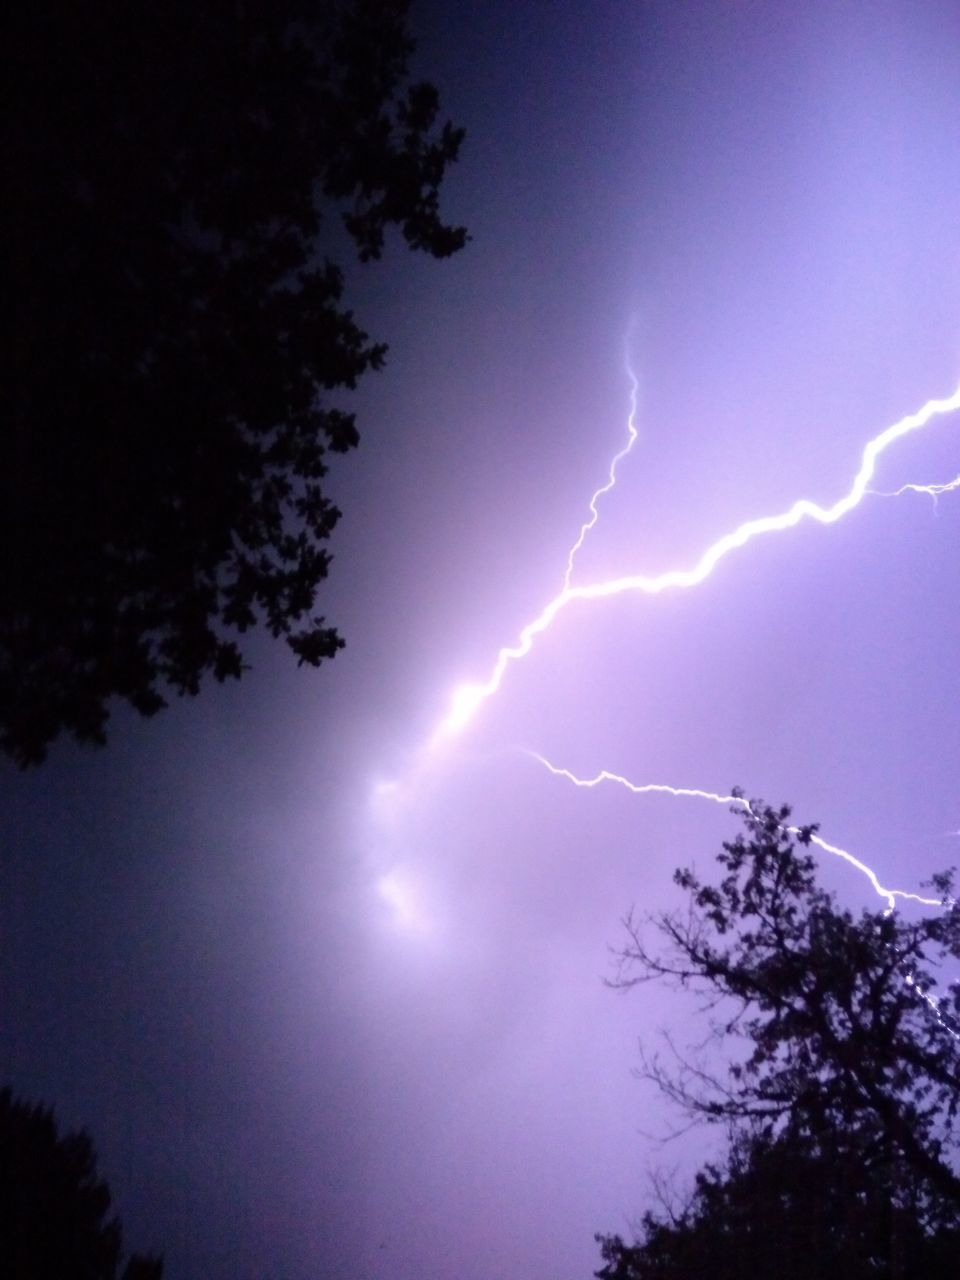 LOW ANGLE VIEW OF LIGHTNING OVER SILHOUETTE TREES